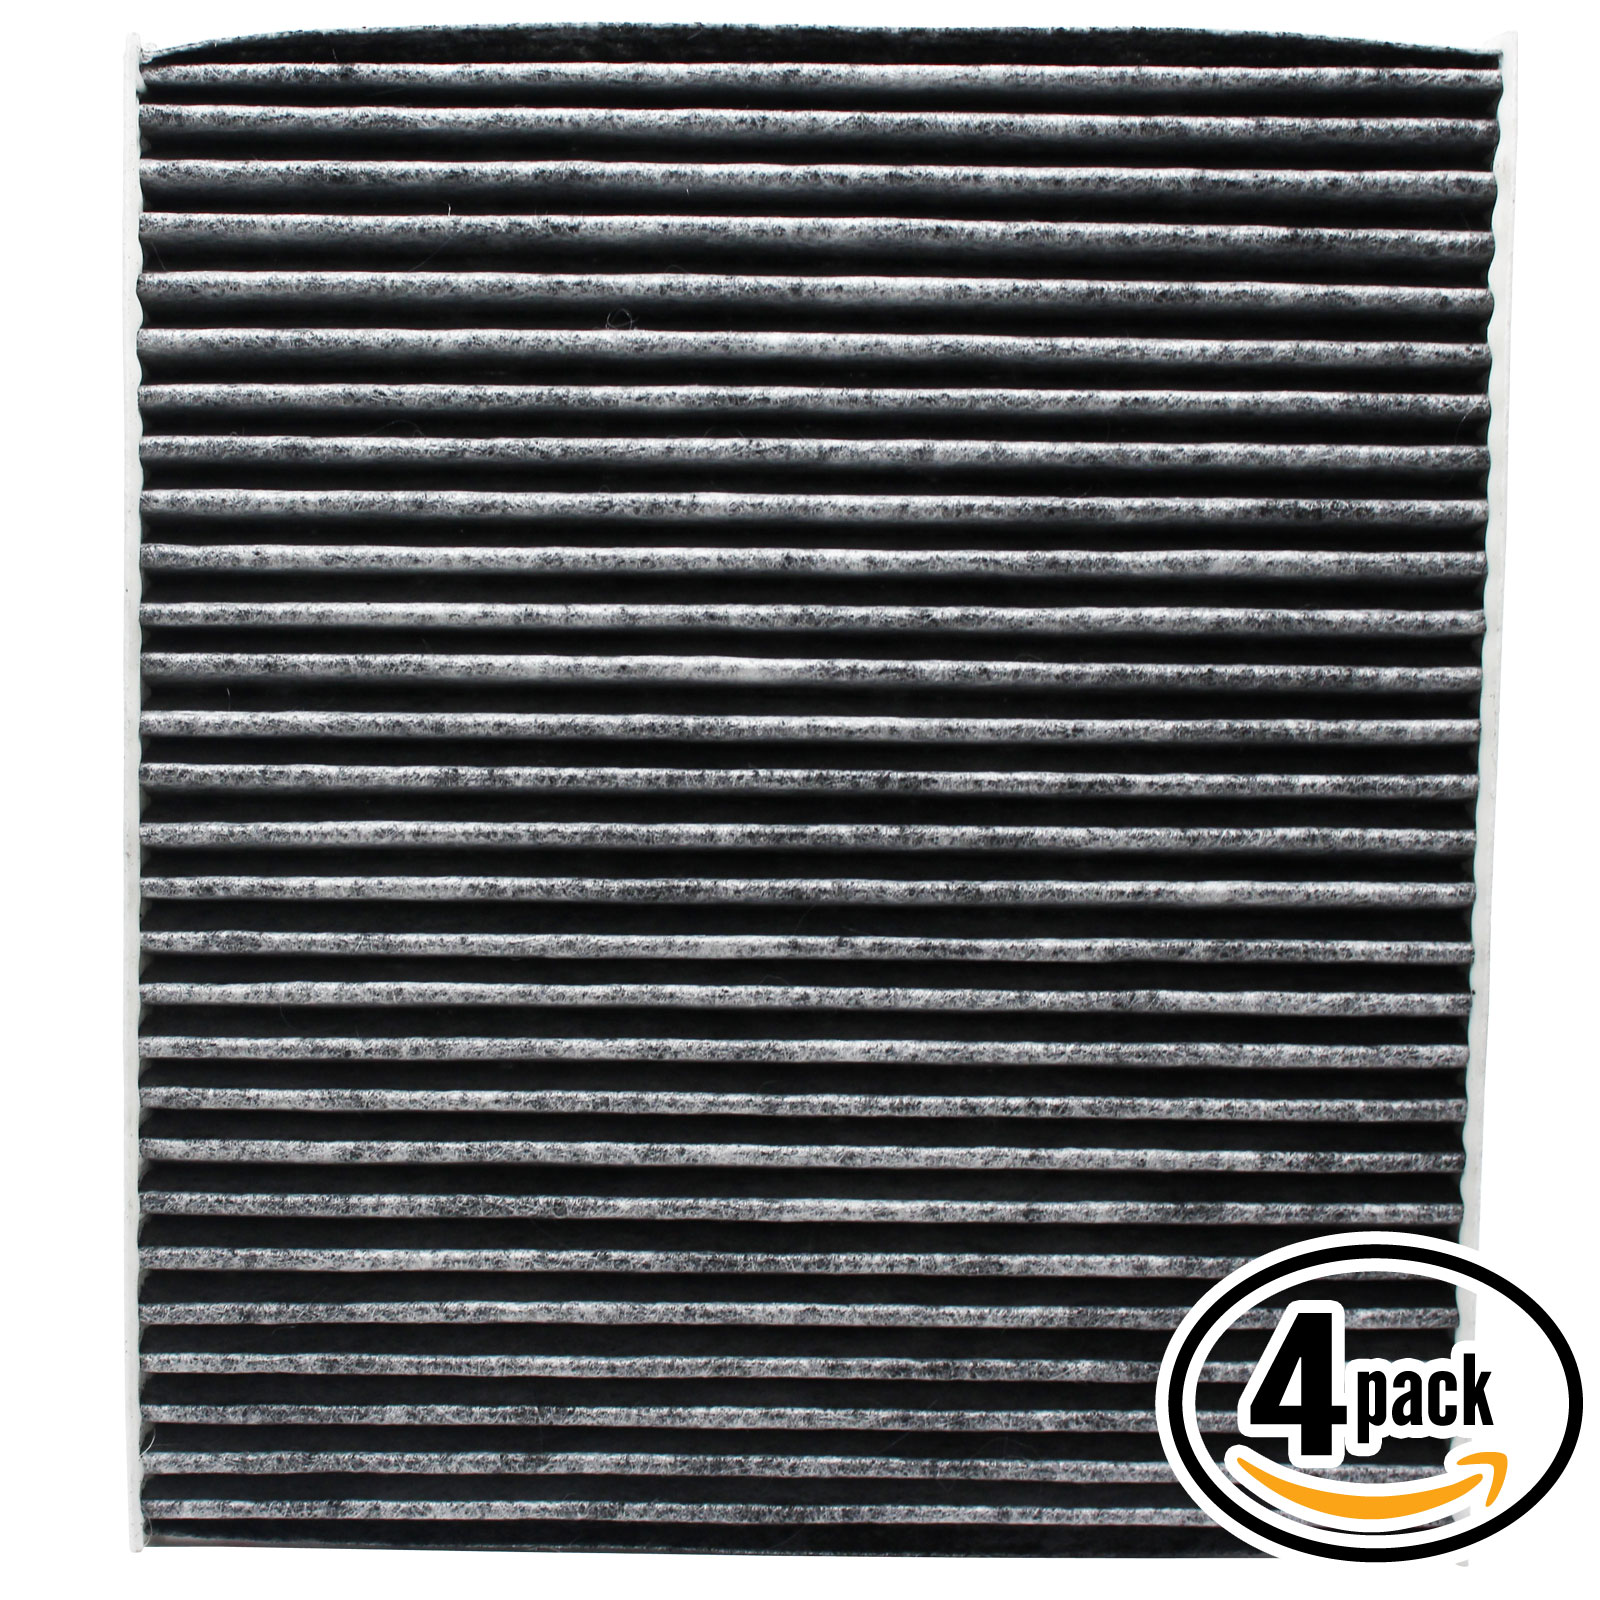 4-Pack Replacement Cabin Air Filter for KIA 97133-2E210 Car/Automotive - Activated Carbon, ACF-10709 - image 4 of 4